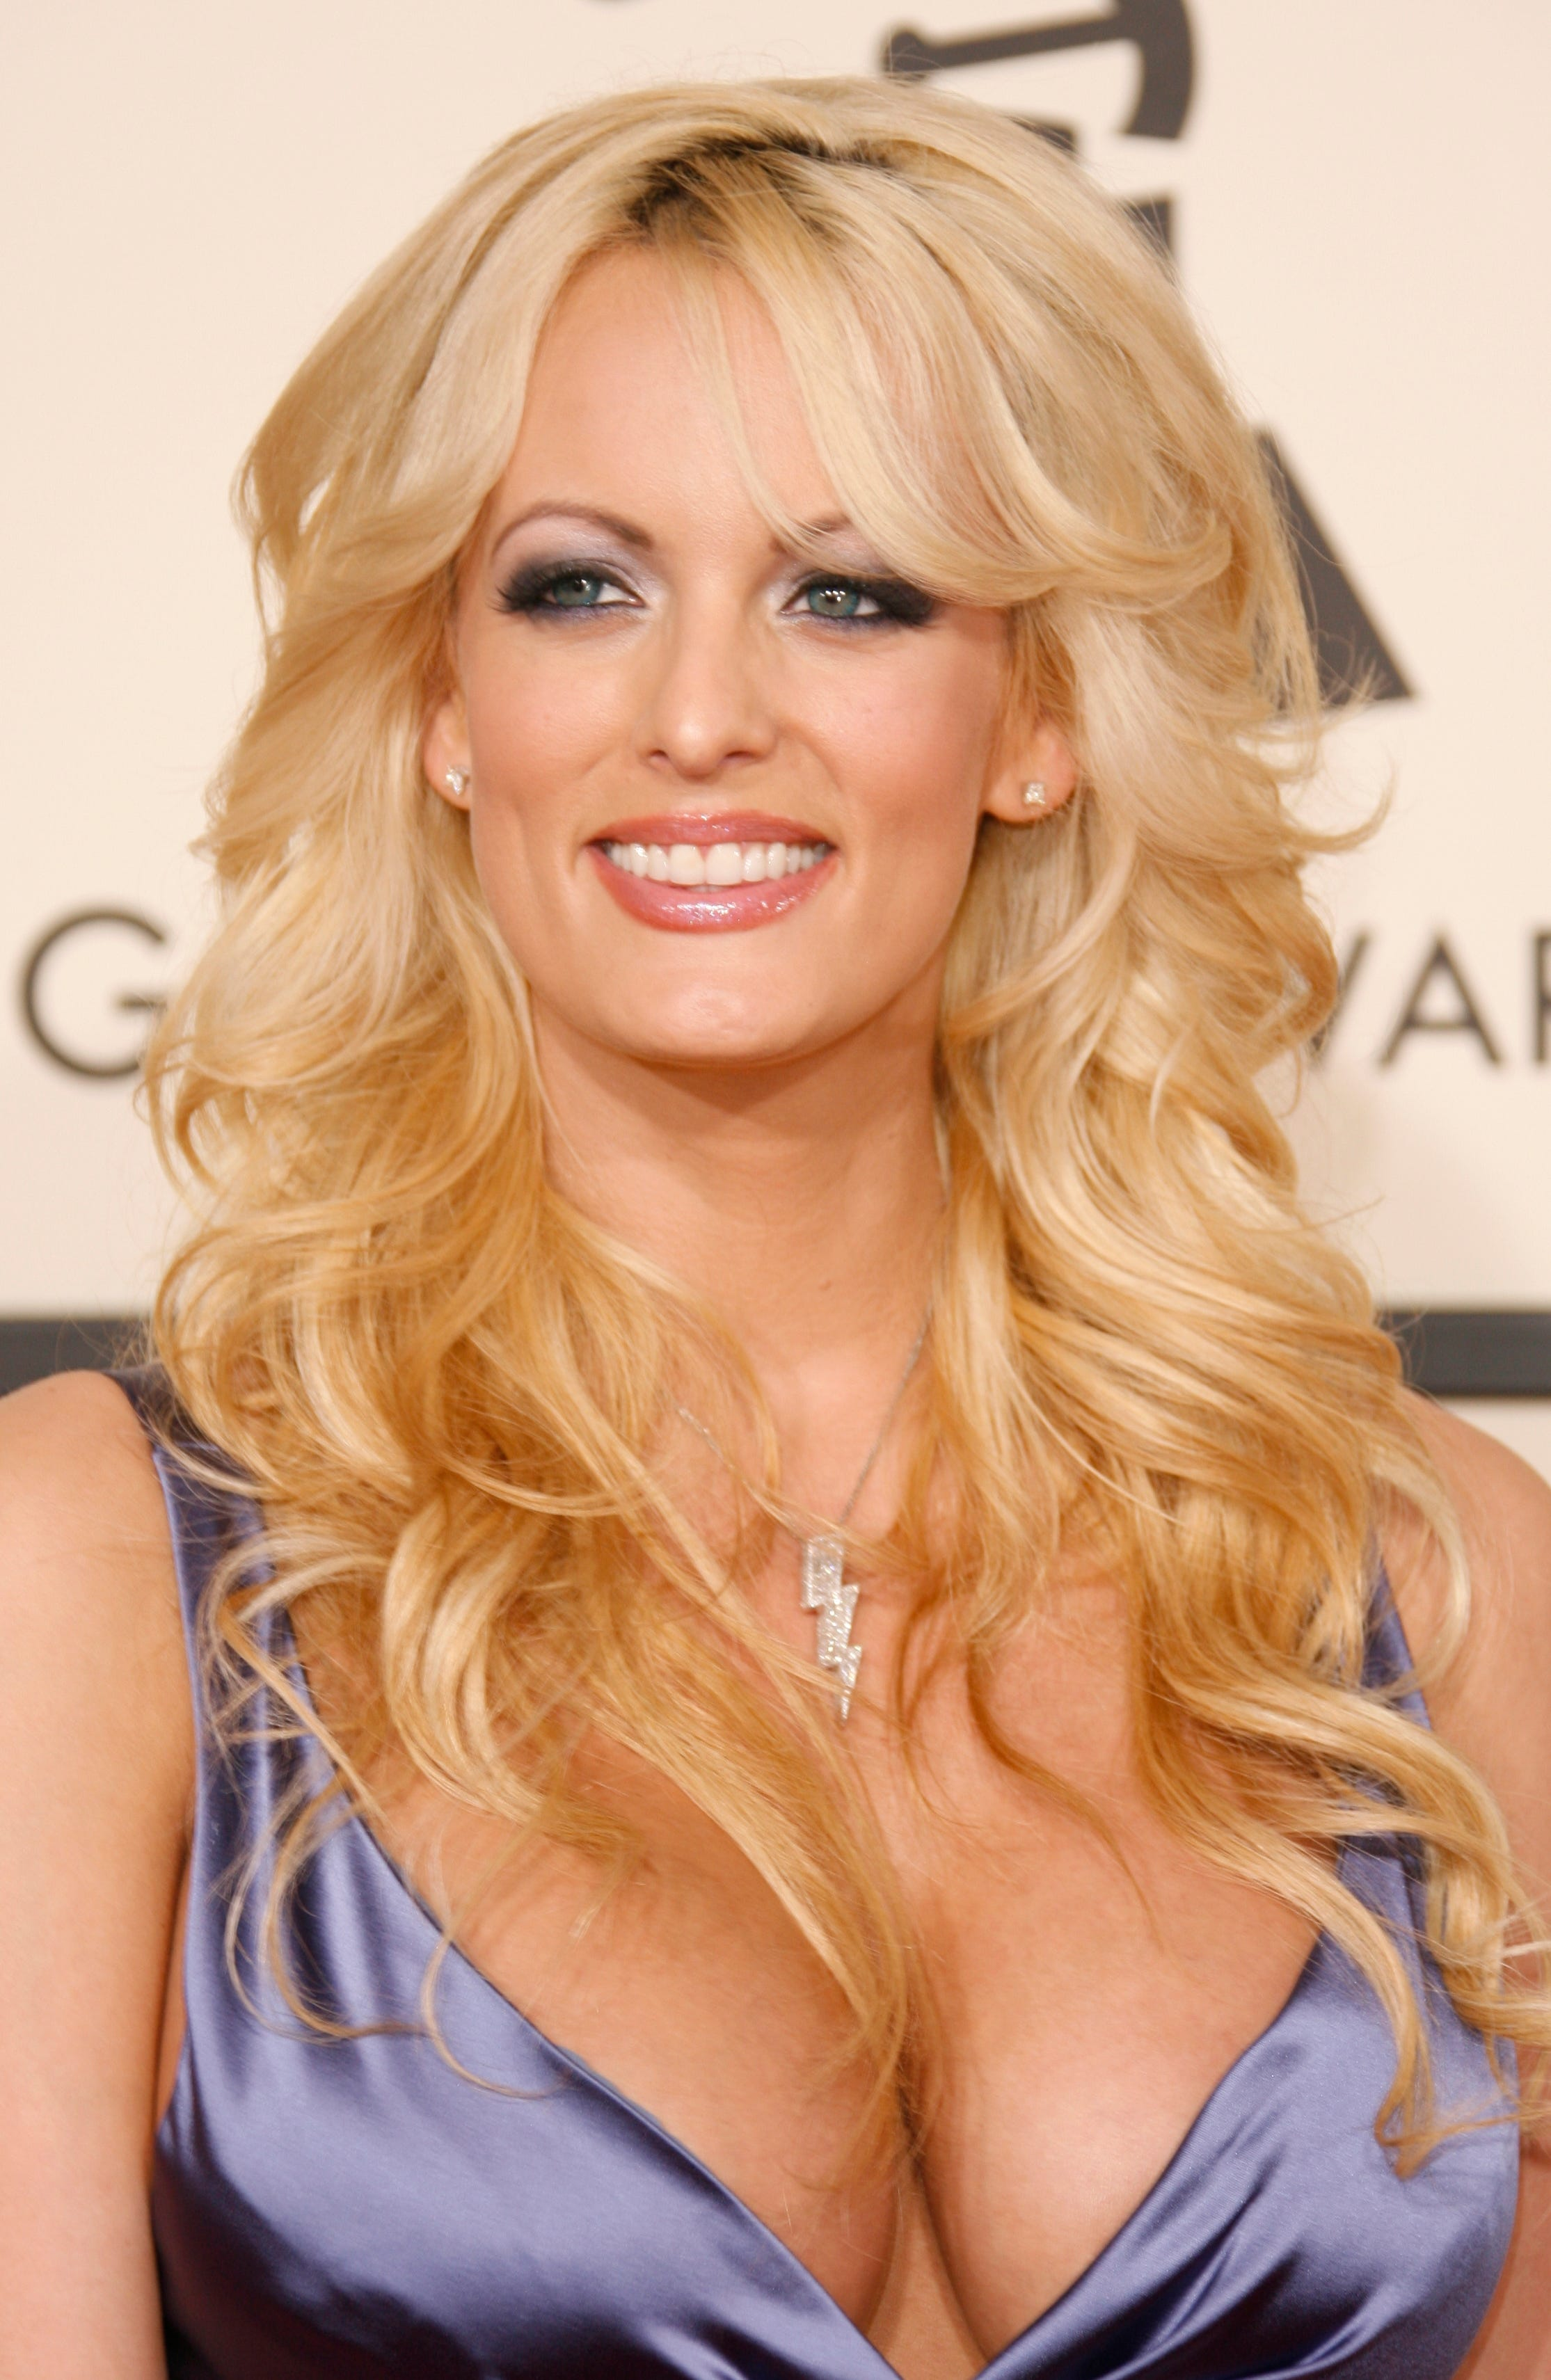 Images About Stormy On Pinterest Stormy Daniels